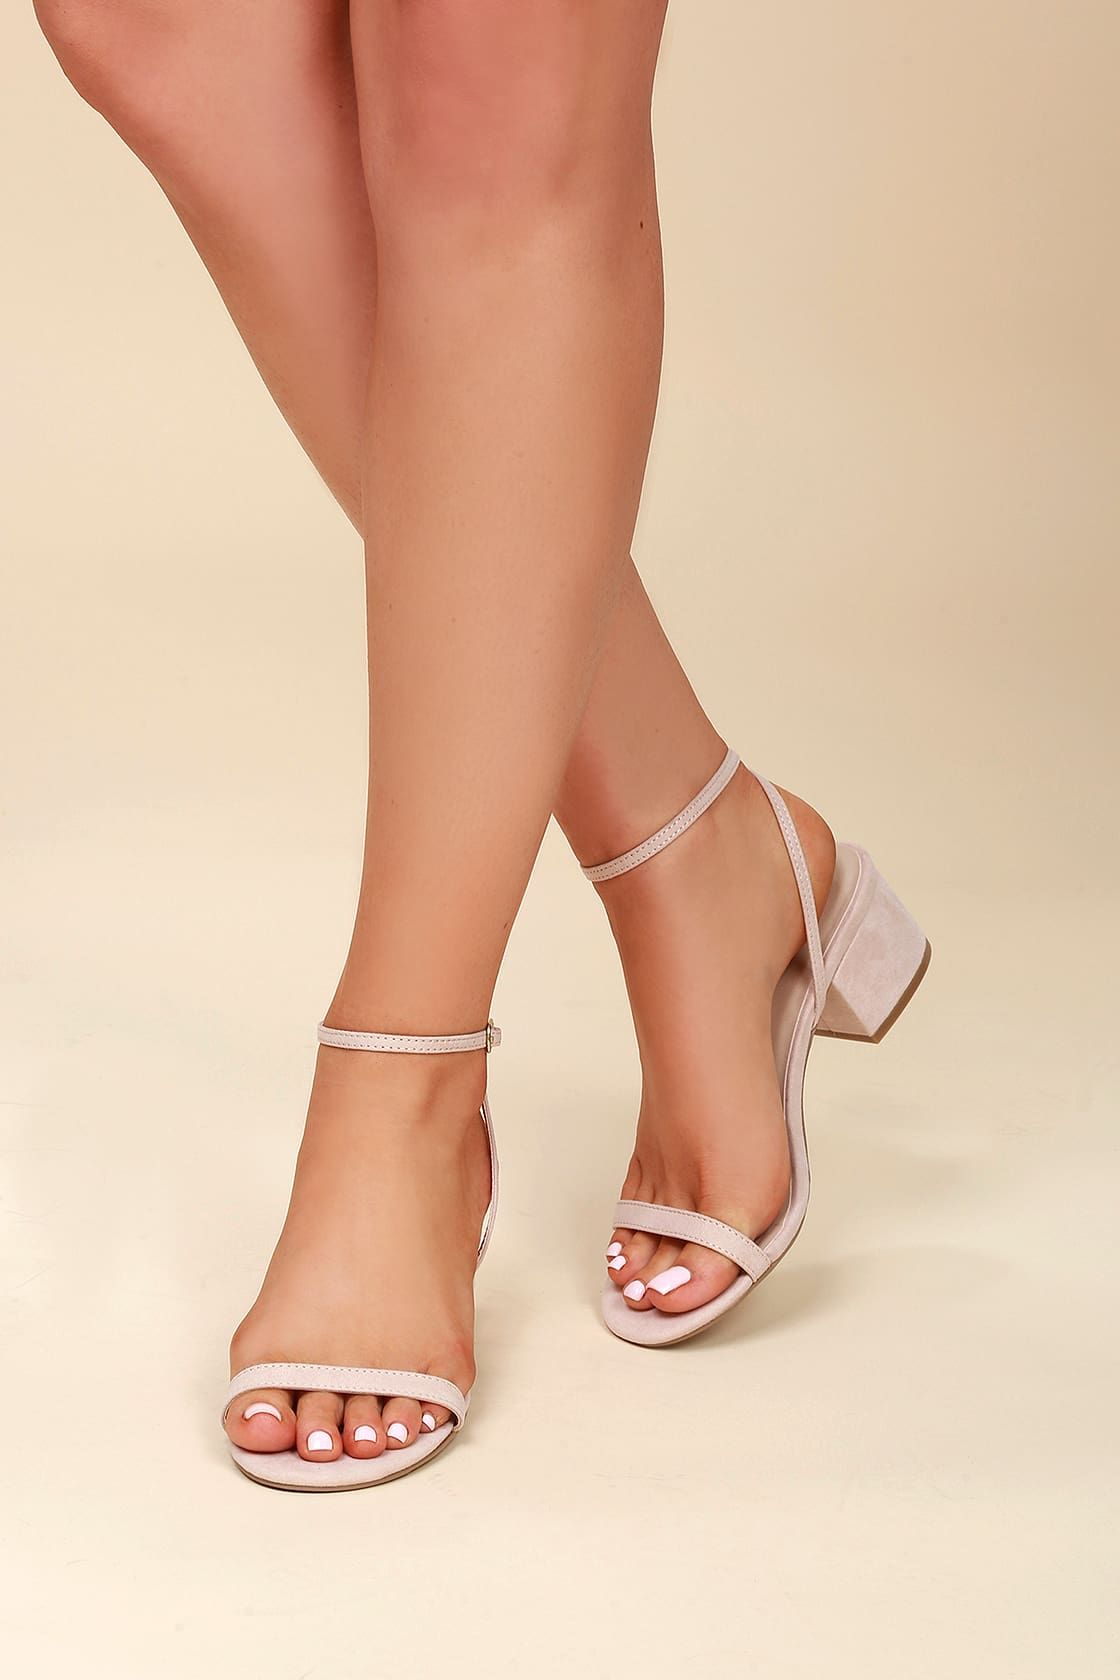 Womens Kitten Casual Mid Heels Ankle Strap Sandal Zip Wedding Prom Formal Shoes